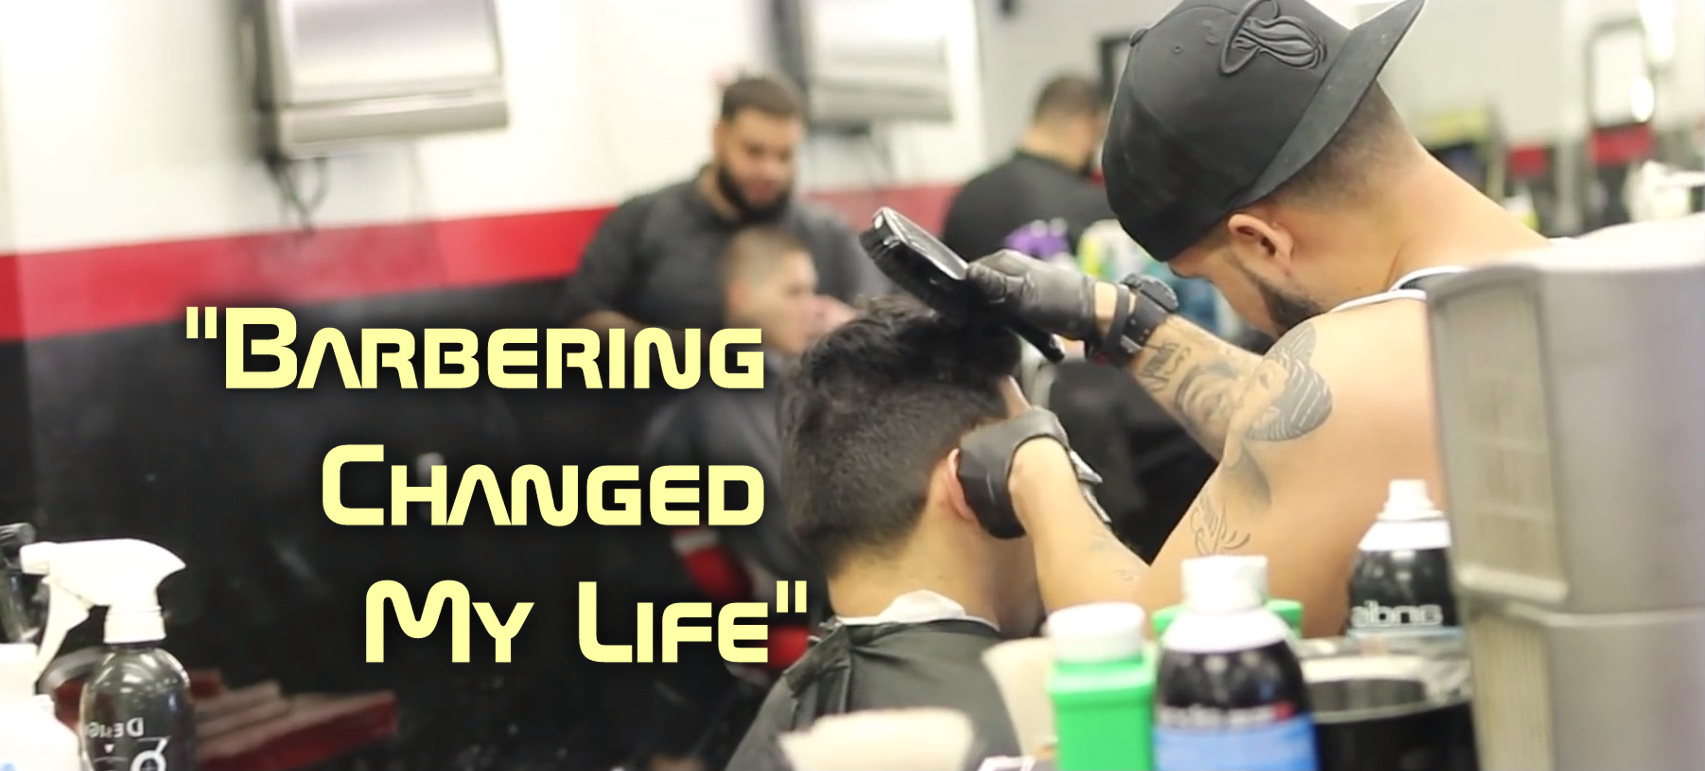 Barbering Changed My Life